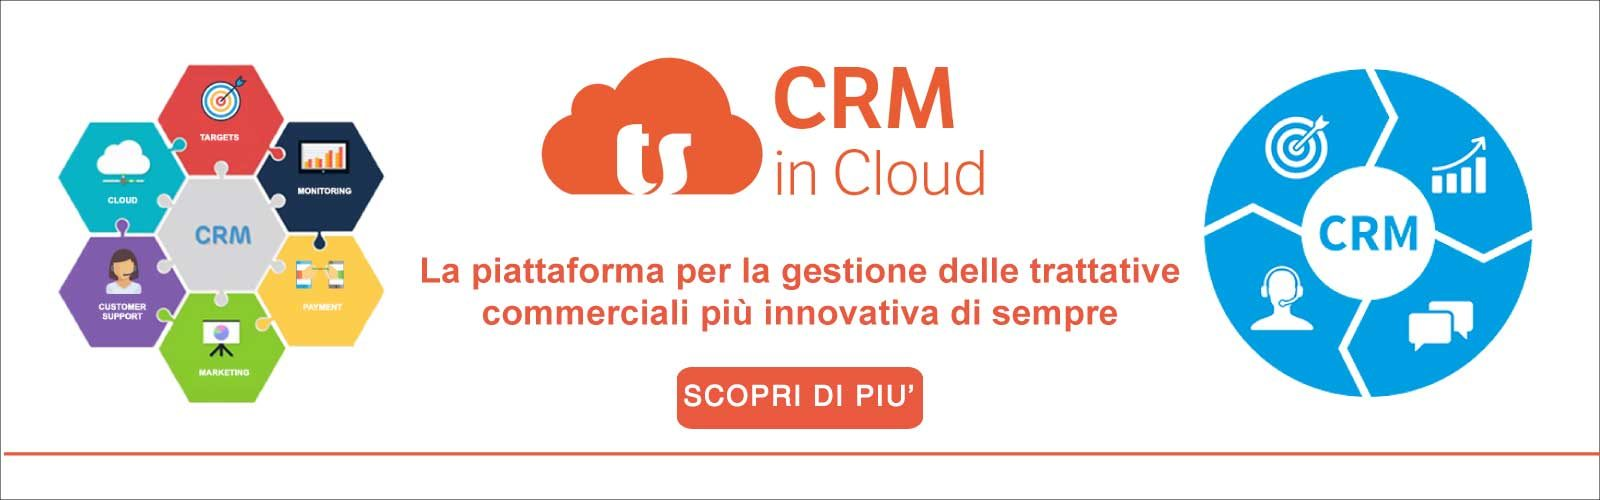 CRM in Cloud